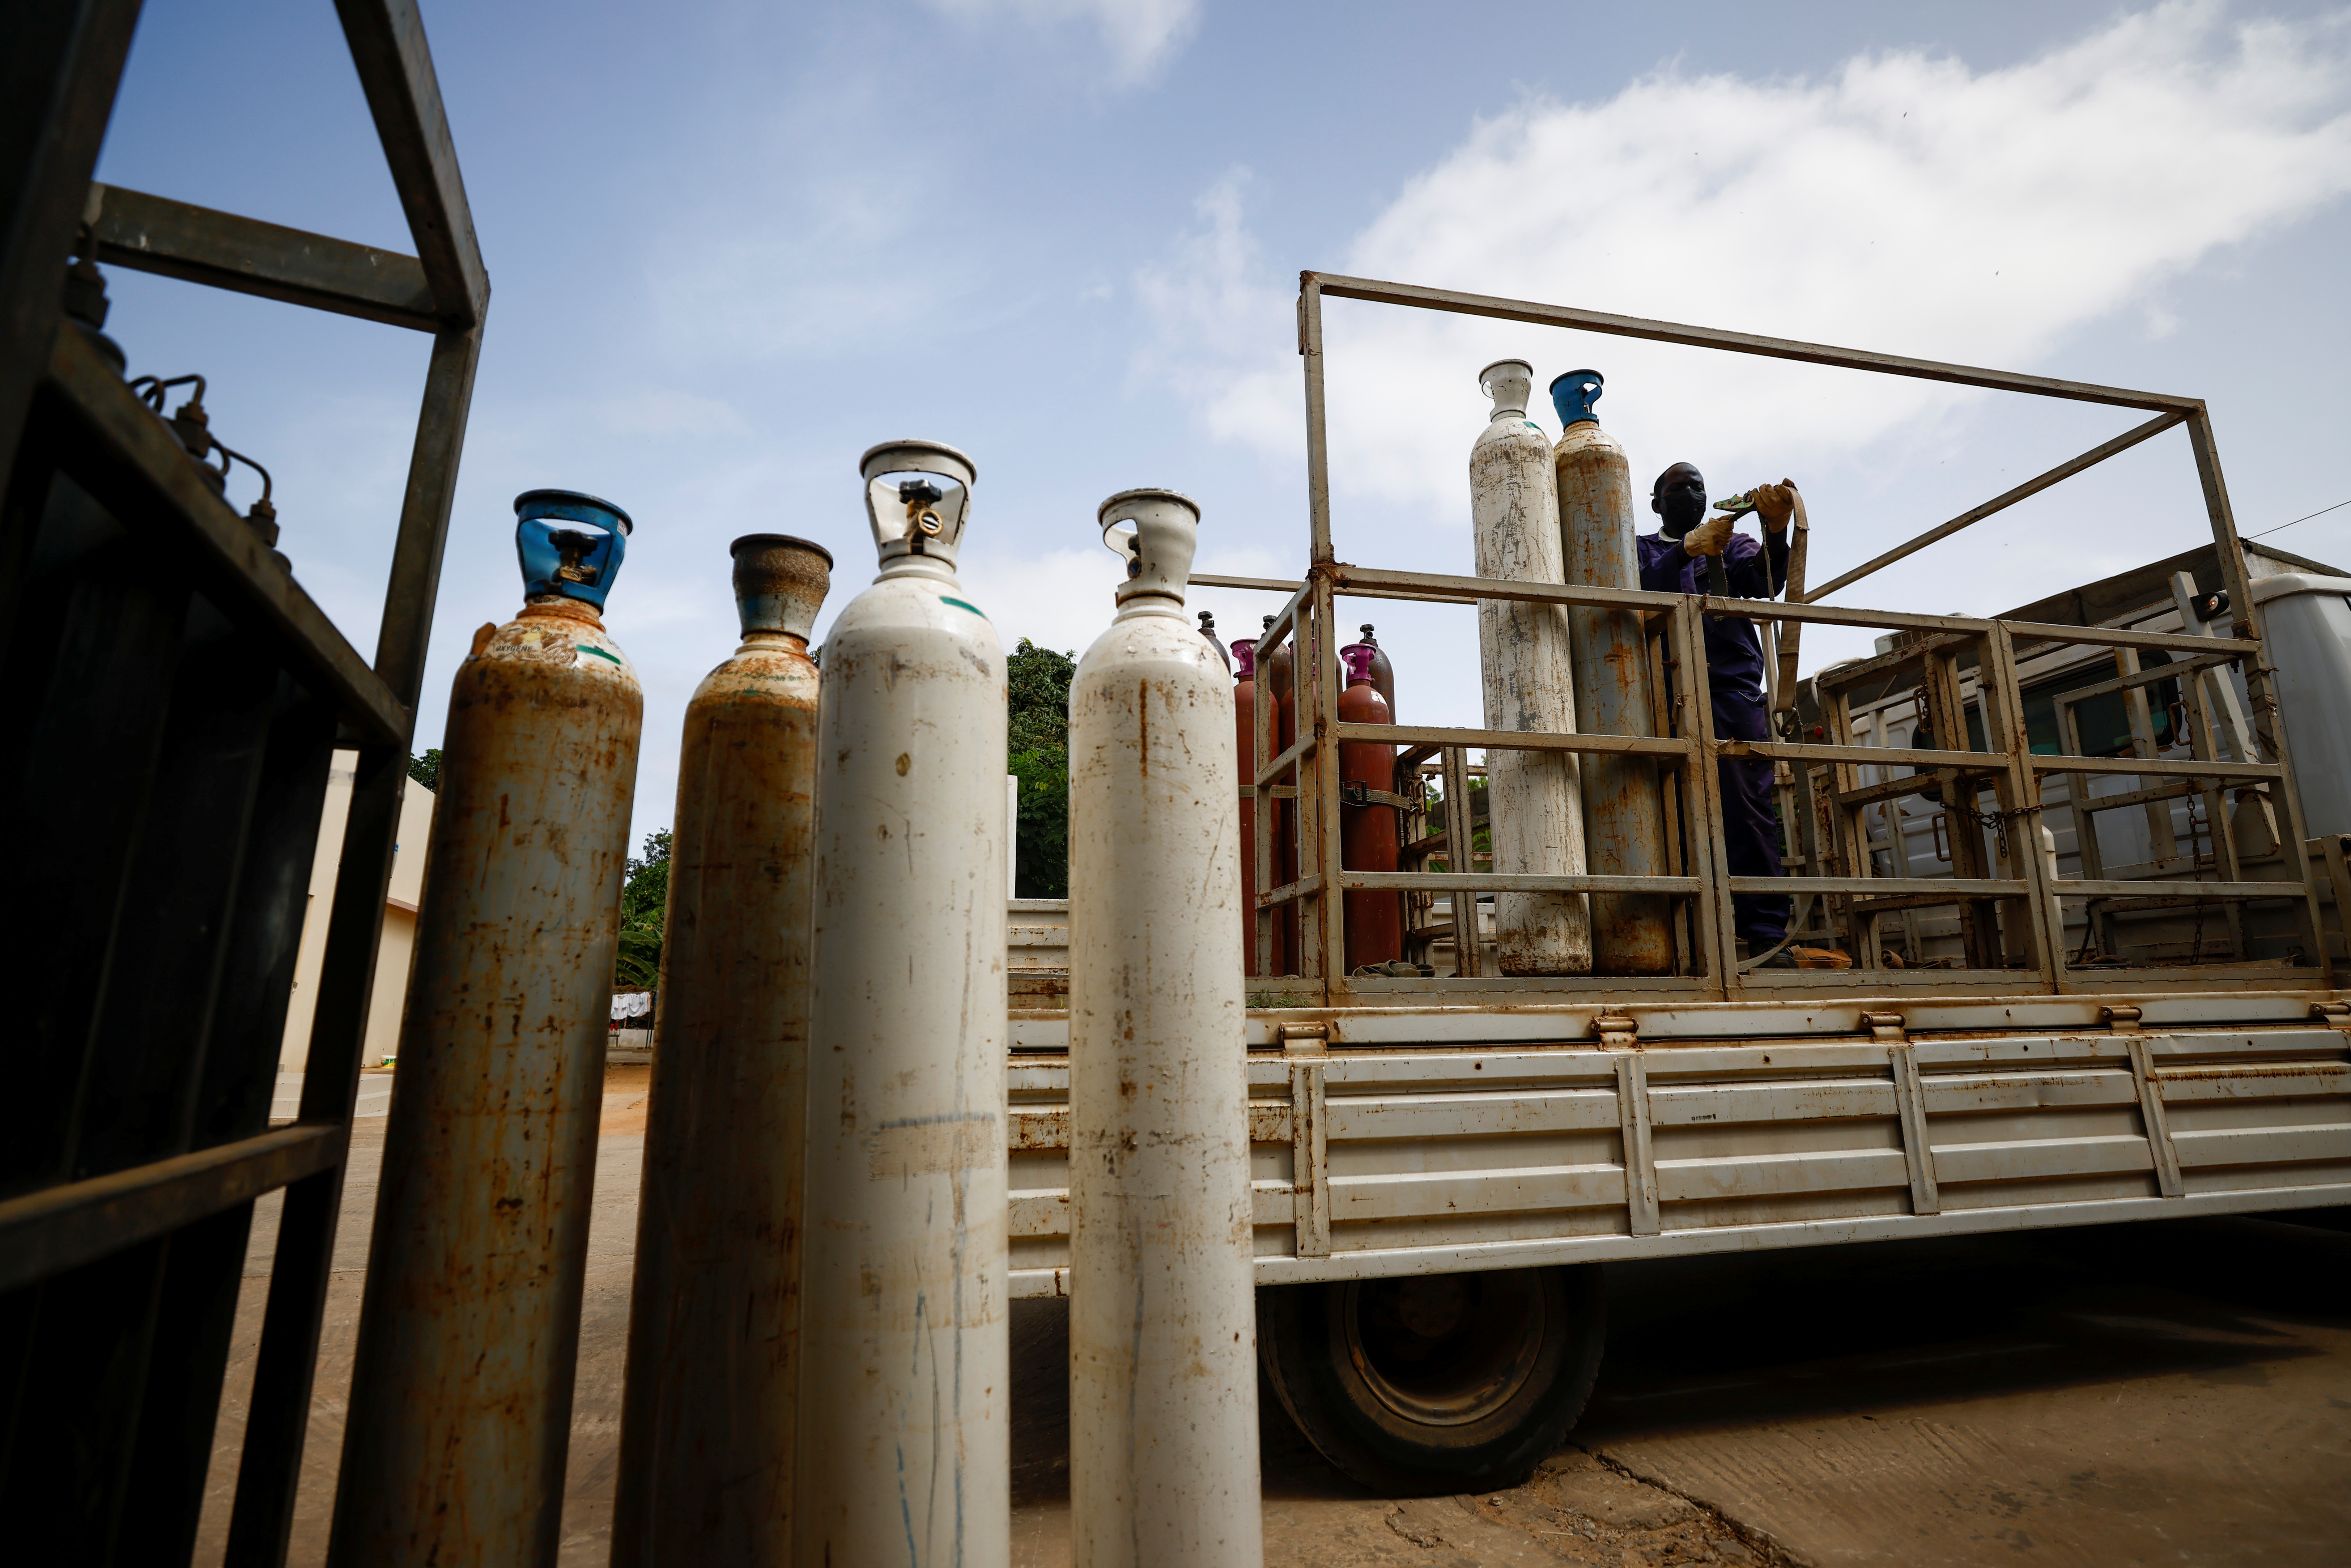 Babacar Gueye, 56, a worker of Molecules gas company prepares to offload oxygen cylinders outside the infectious diseases department of the Fann University Hospital in Dakar, amid a surge of coronavirus disease (COVID-19) cases in Senegal July 28, 2021. Picture taken July 28, 2021. REUTERS/Zohra Bensemra